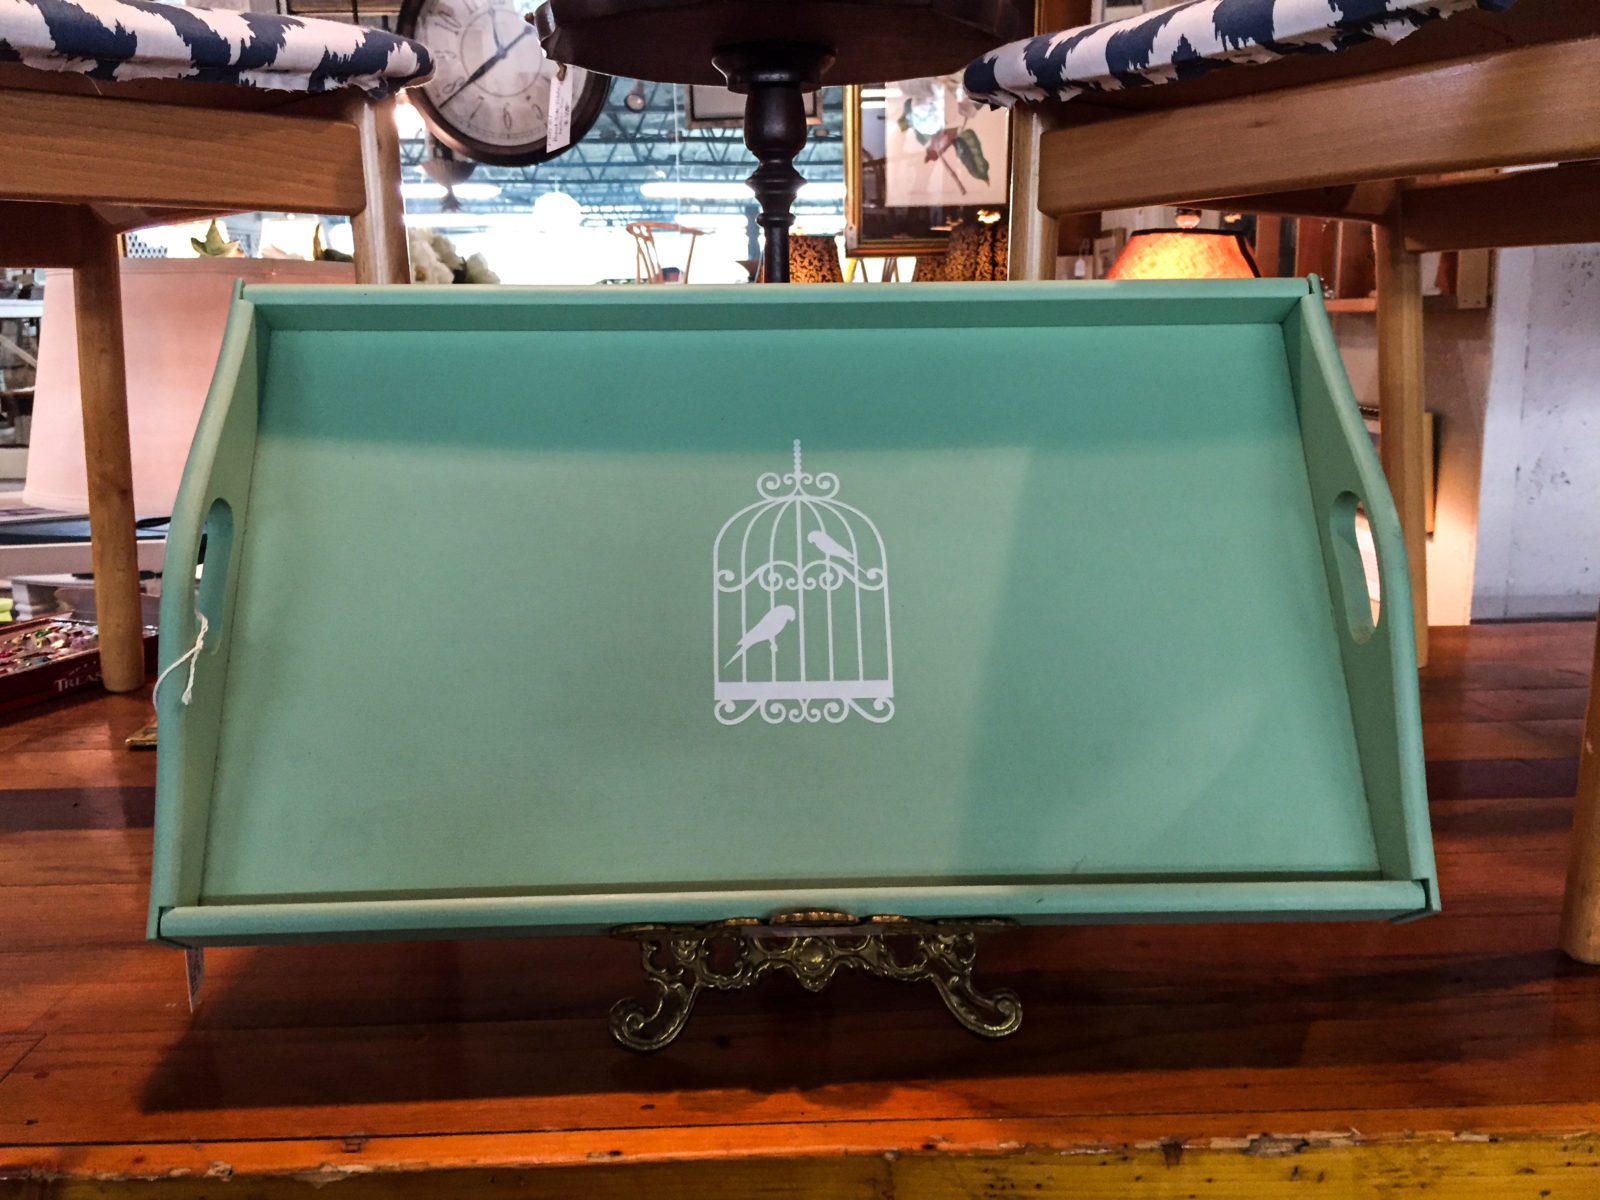 Bird Cage Tray • Upcycled teak tray painted in Fusion Mineral Paint Inglenook and embellished with a white birdcage. So pretty, and versatile! Use it indoors or out, as display decor or a functional serving piece!